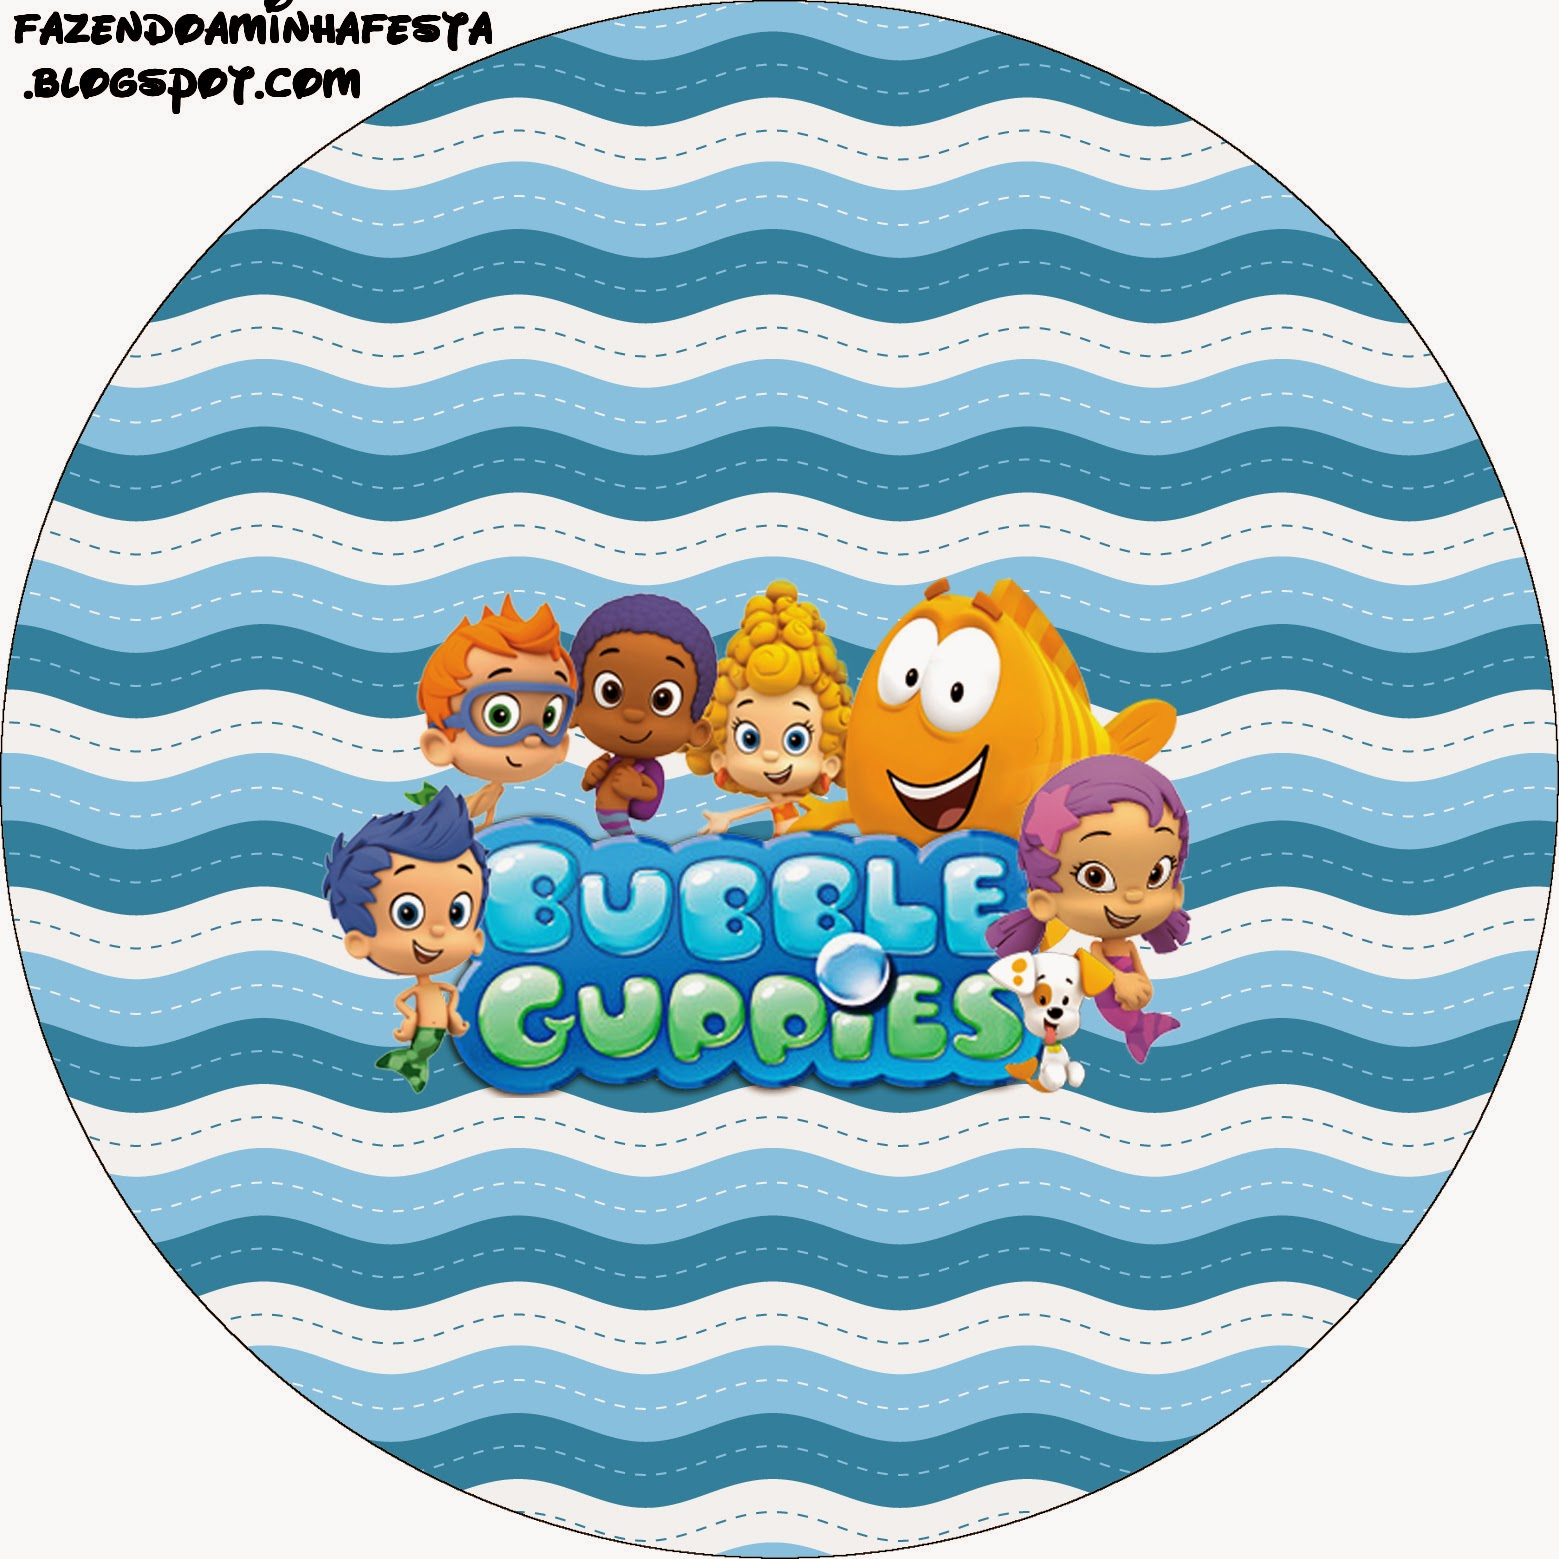 picture about Bubble Guppies Printable named Bubble Guppies Free of charge Printable Sweet Bar Labels. - Oh My